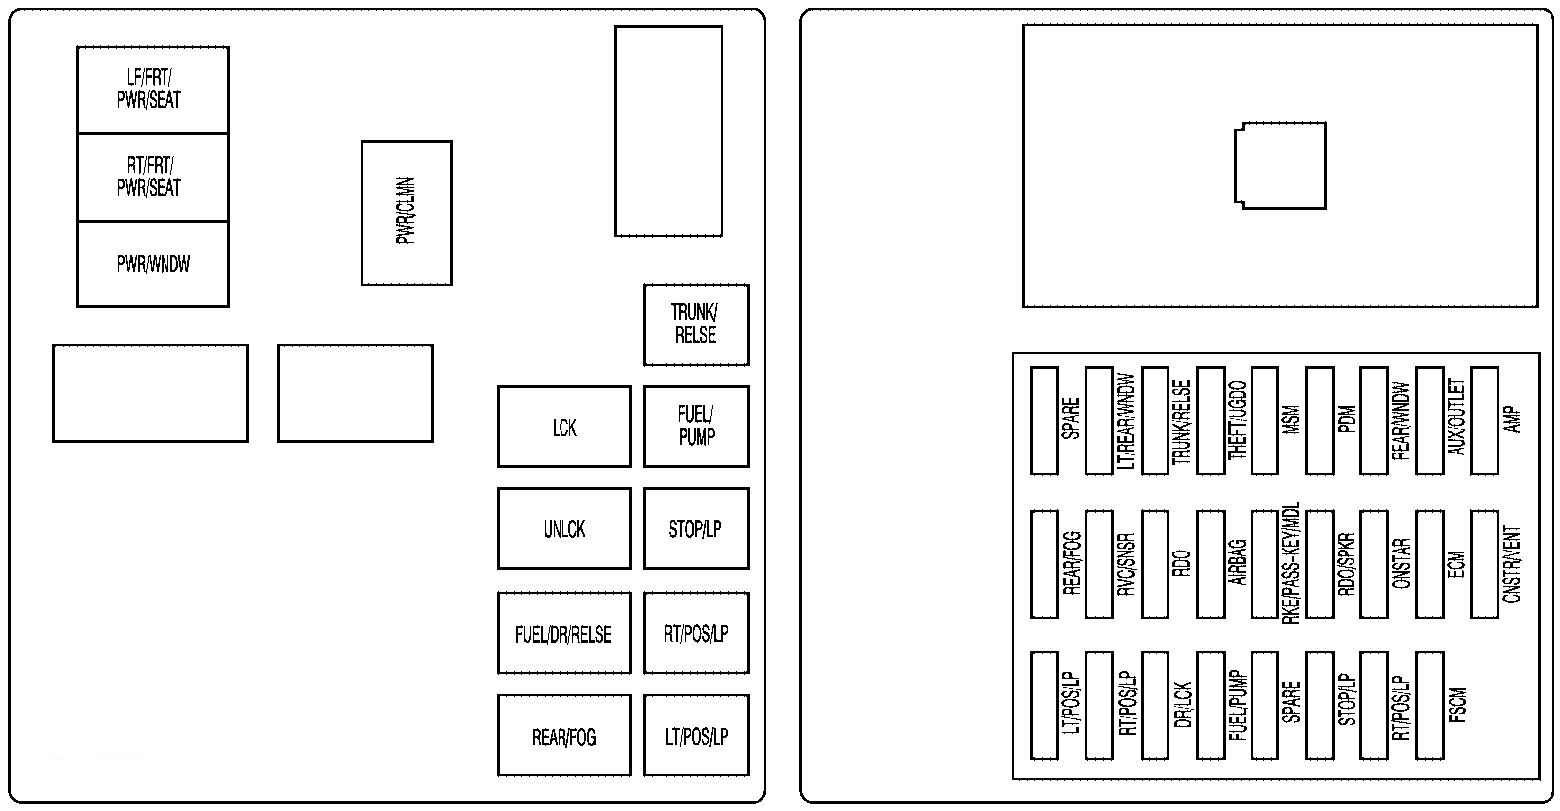 2010 Cadillac Srx Fuse Box Located : 34 Wiring Diagram